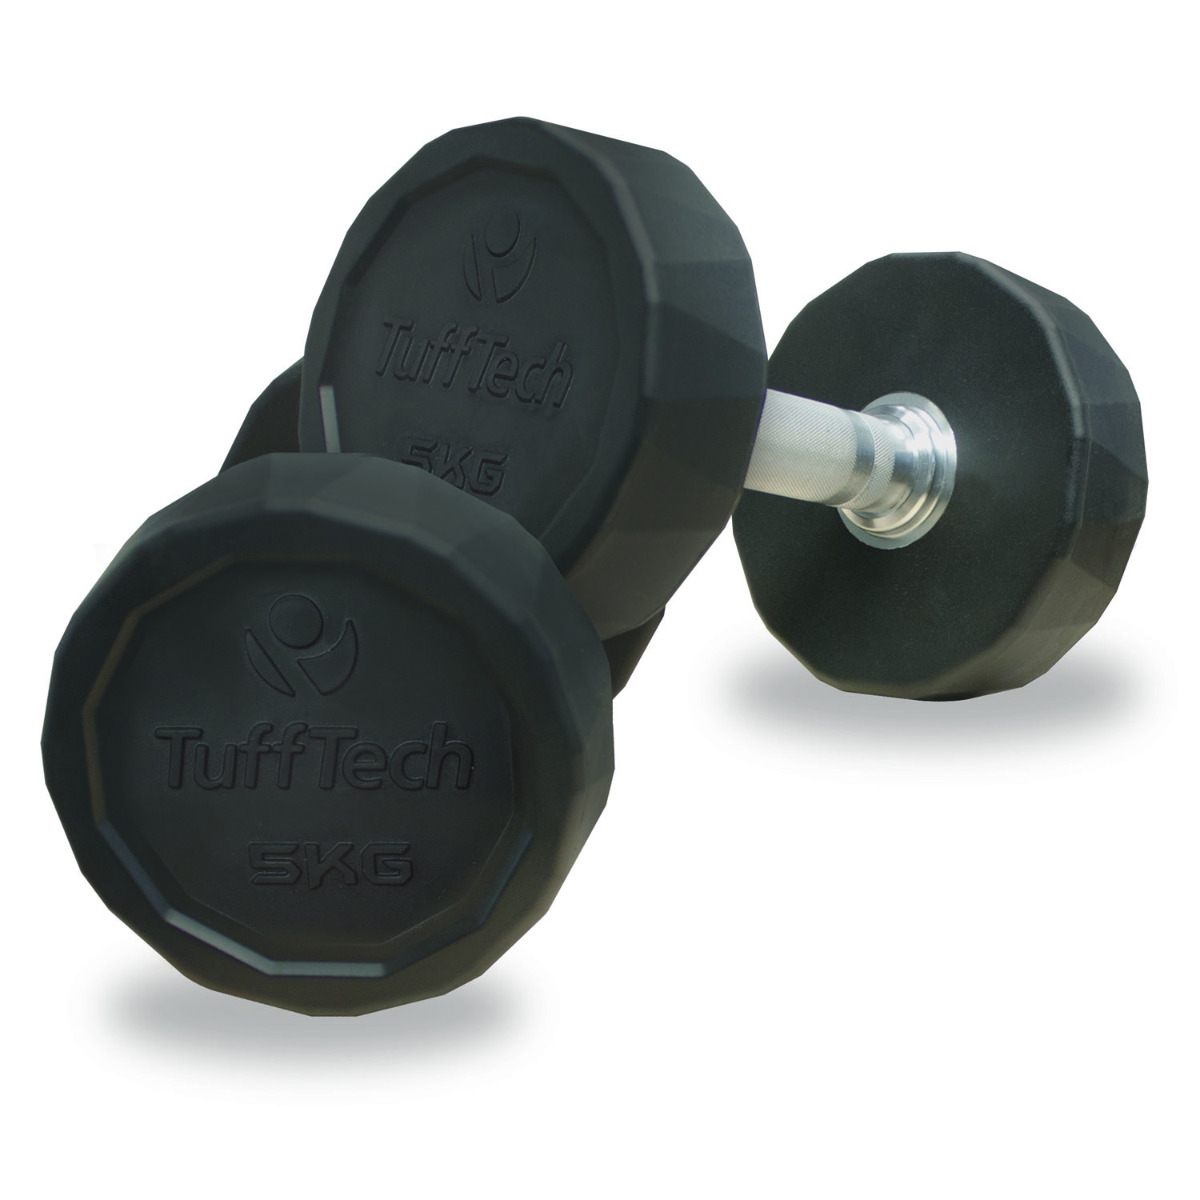 Pair of 8kg Rubber Dumbbells